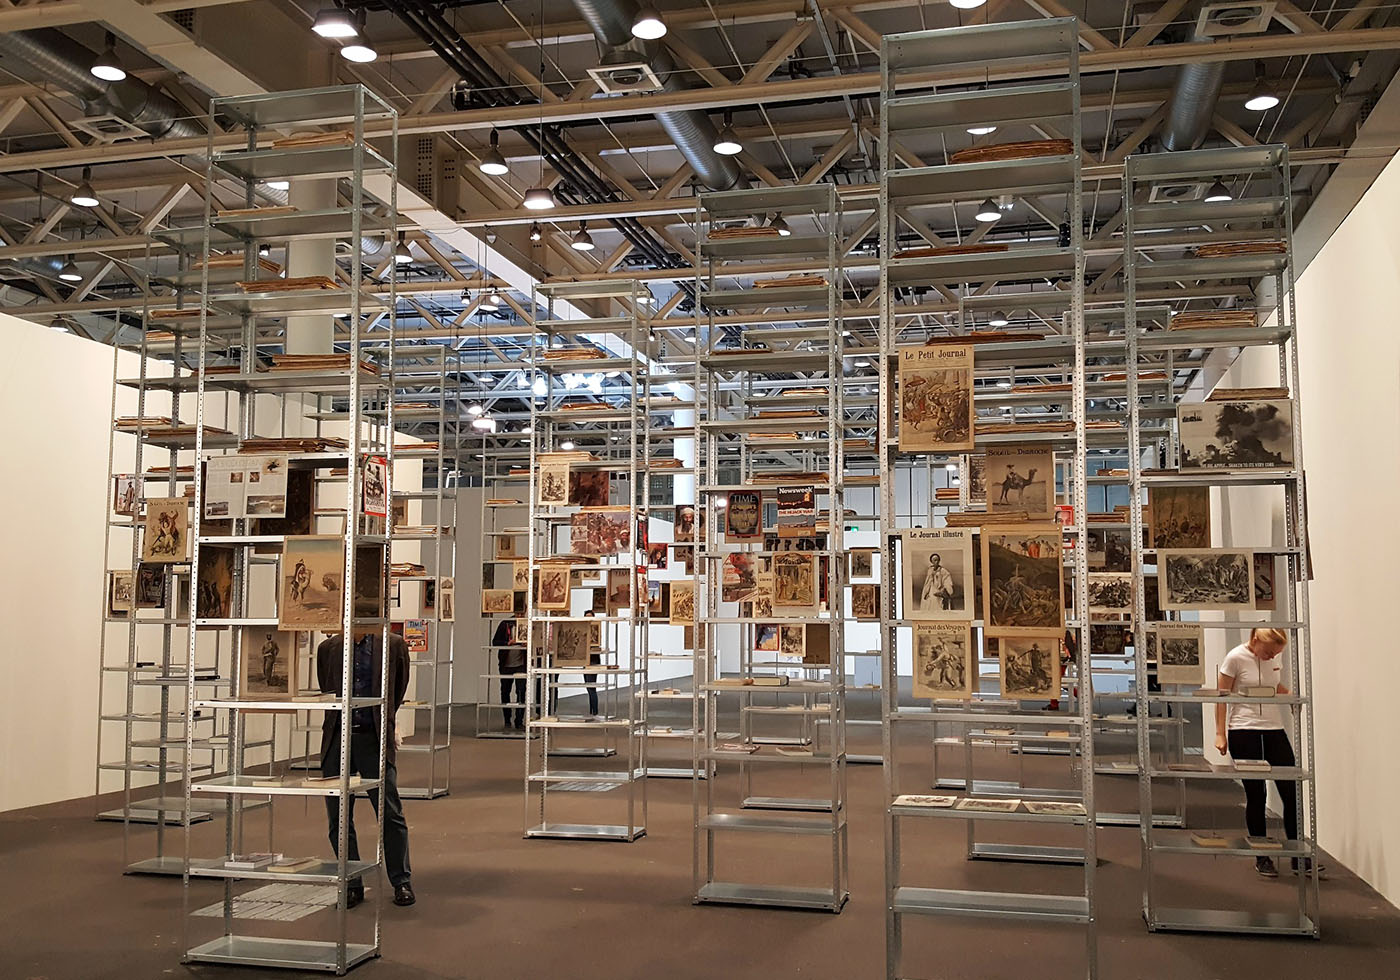 An installation by Kader Attia, presented by Lehmann Maupin and Galerie Nagel Draxler (all photos by the author for Hyperallergic)